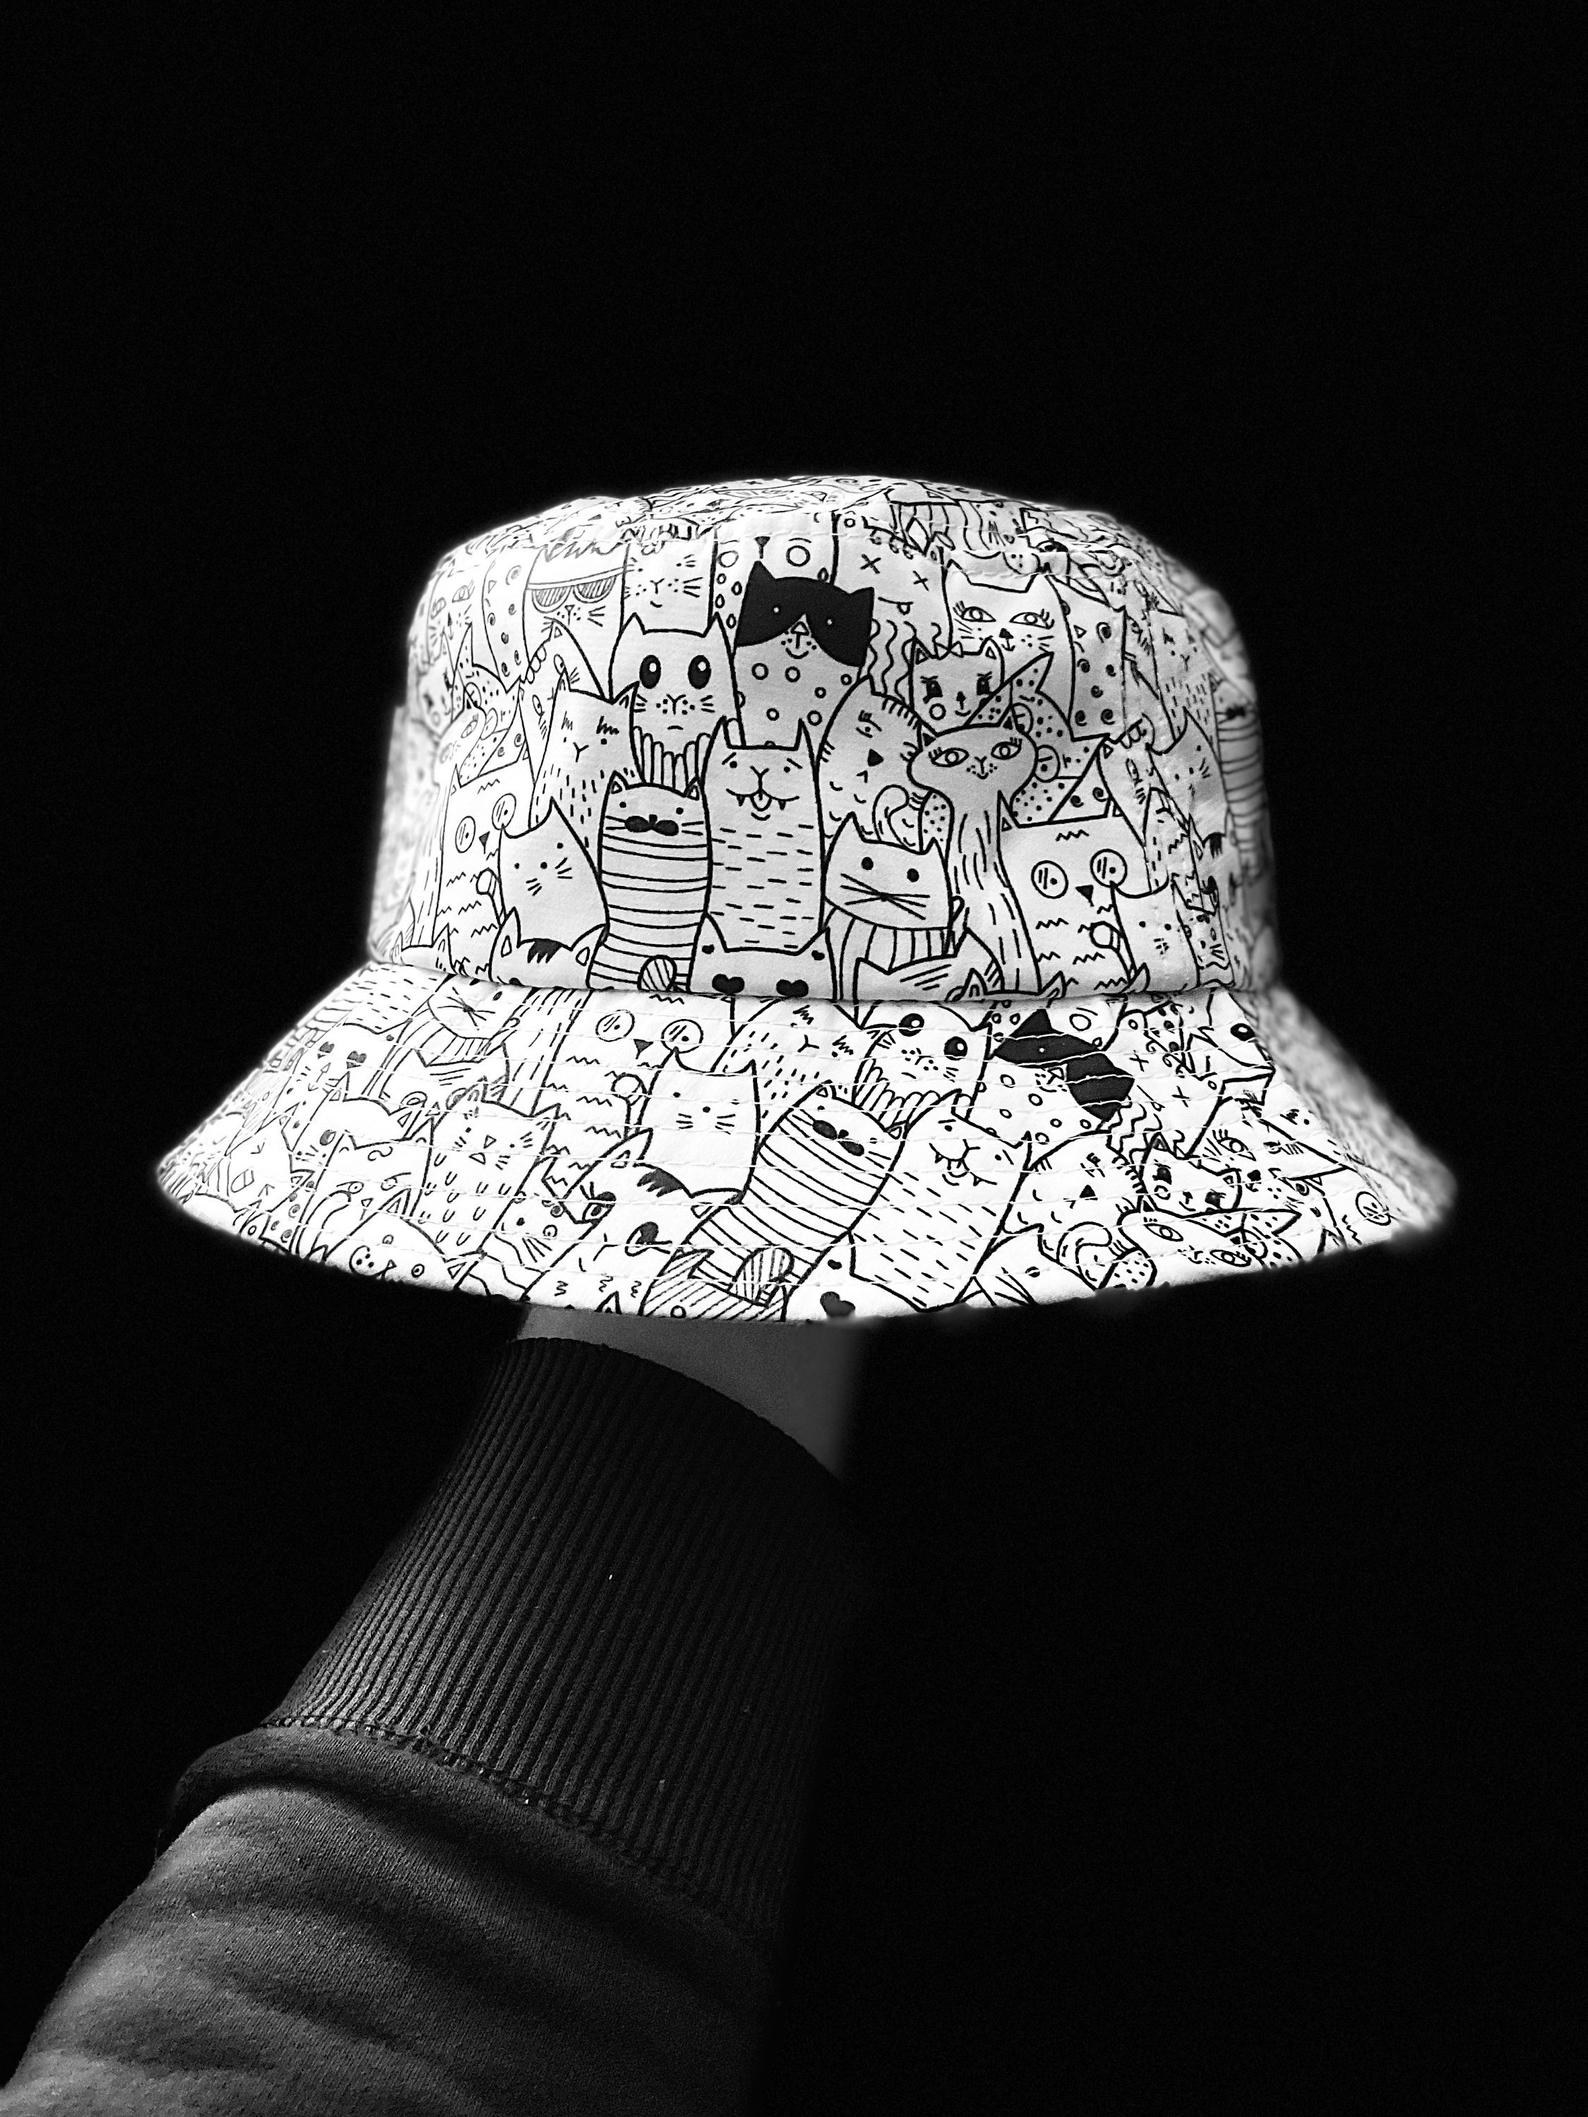 a hand holds up the doodle cat bucket hat